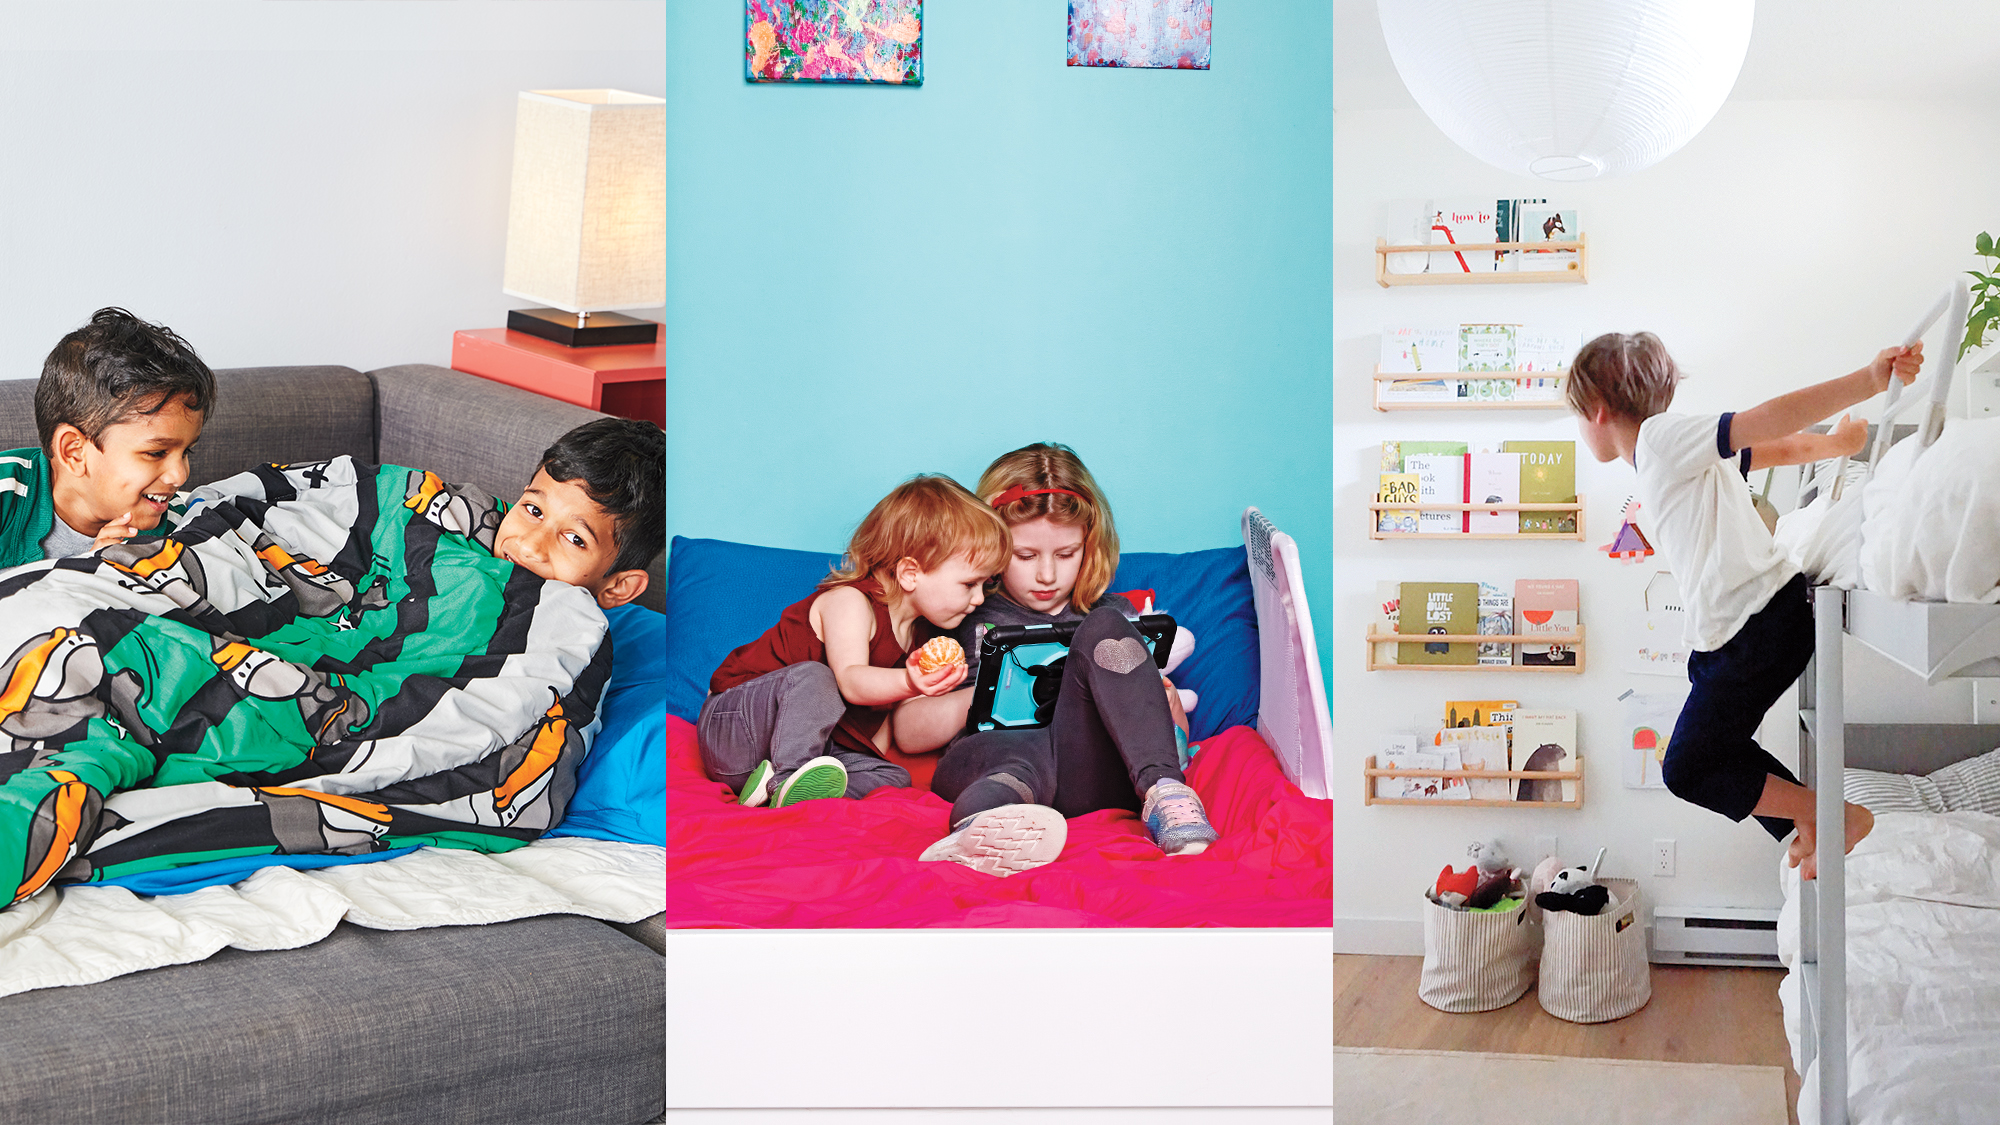 Triptych of photos showing kids living in small space. Far left shows two kids sharing a bed on a pull-out sofa, the centre photo shows two kid playing on a tablet on a single bed, and the far right image shows a kid hanging off the ladder of their bunk bed